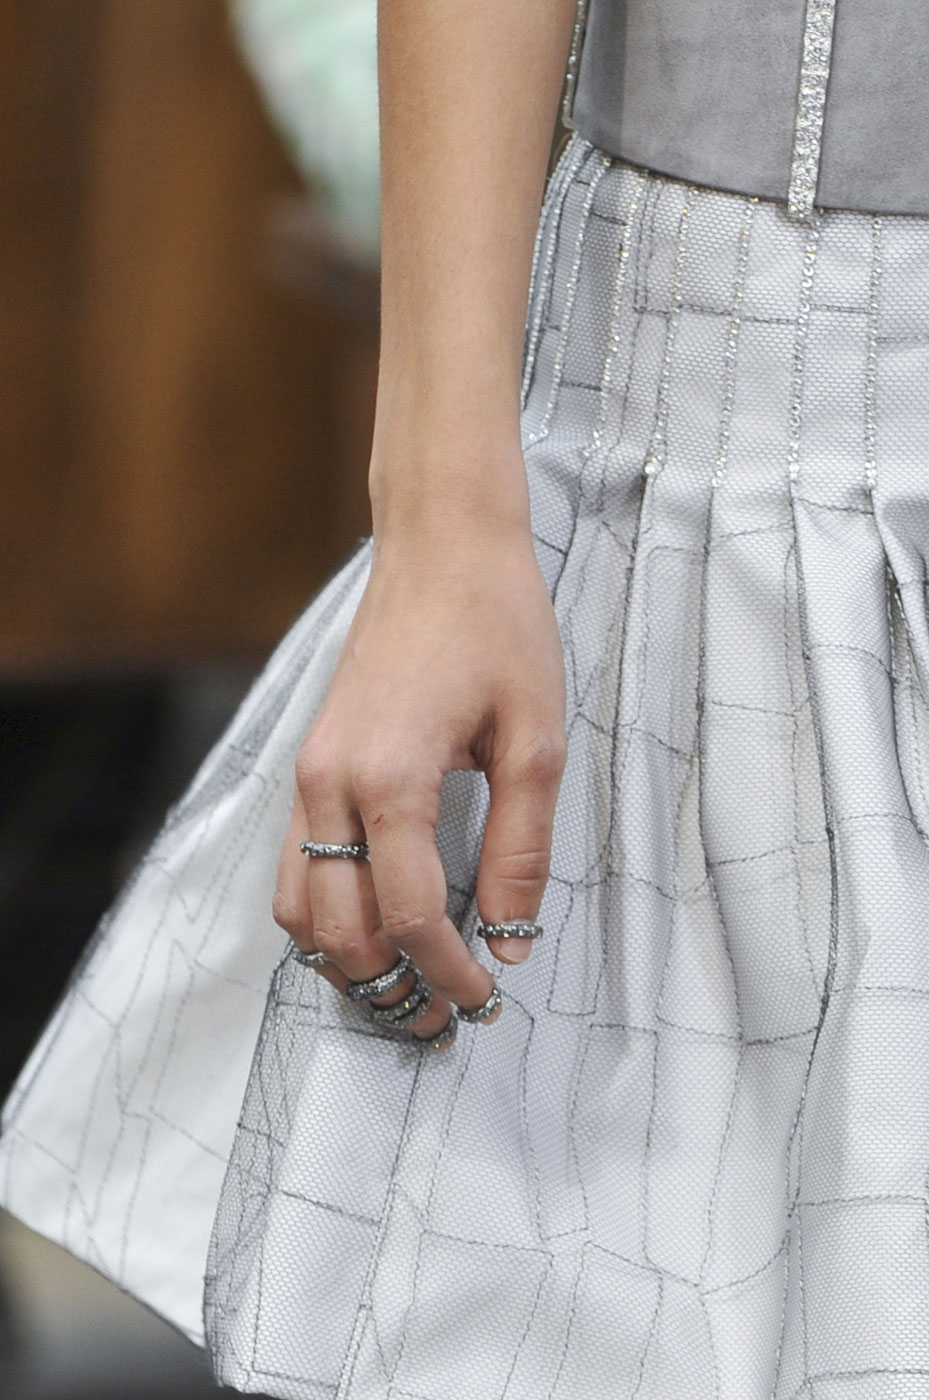 The nails at Chanel, painted with the brand's Nail Colour in Ballerina ($27), were kept light and neutral to match the androgynous makeup look . . . and to show off the amazing knuckle rings on the models' fingers.